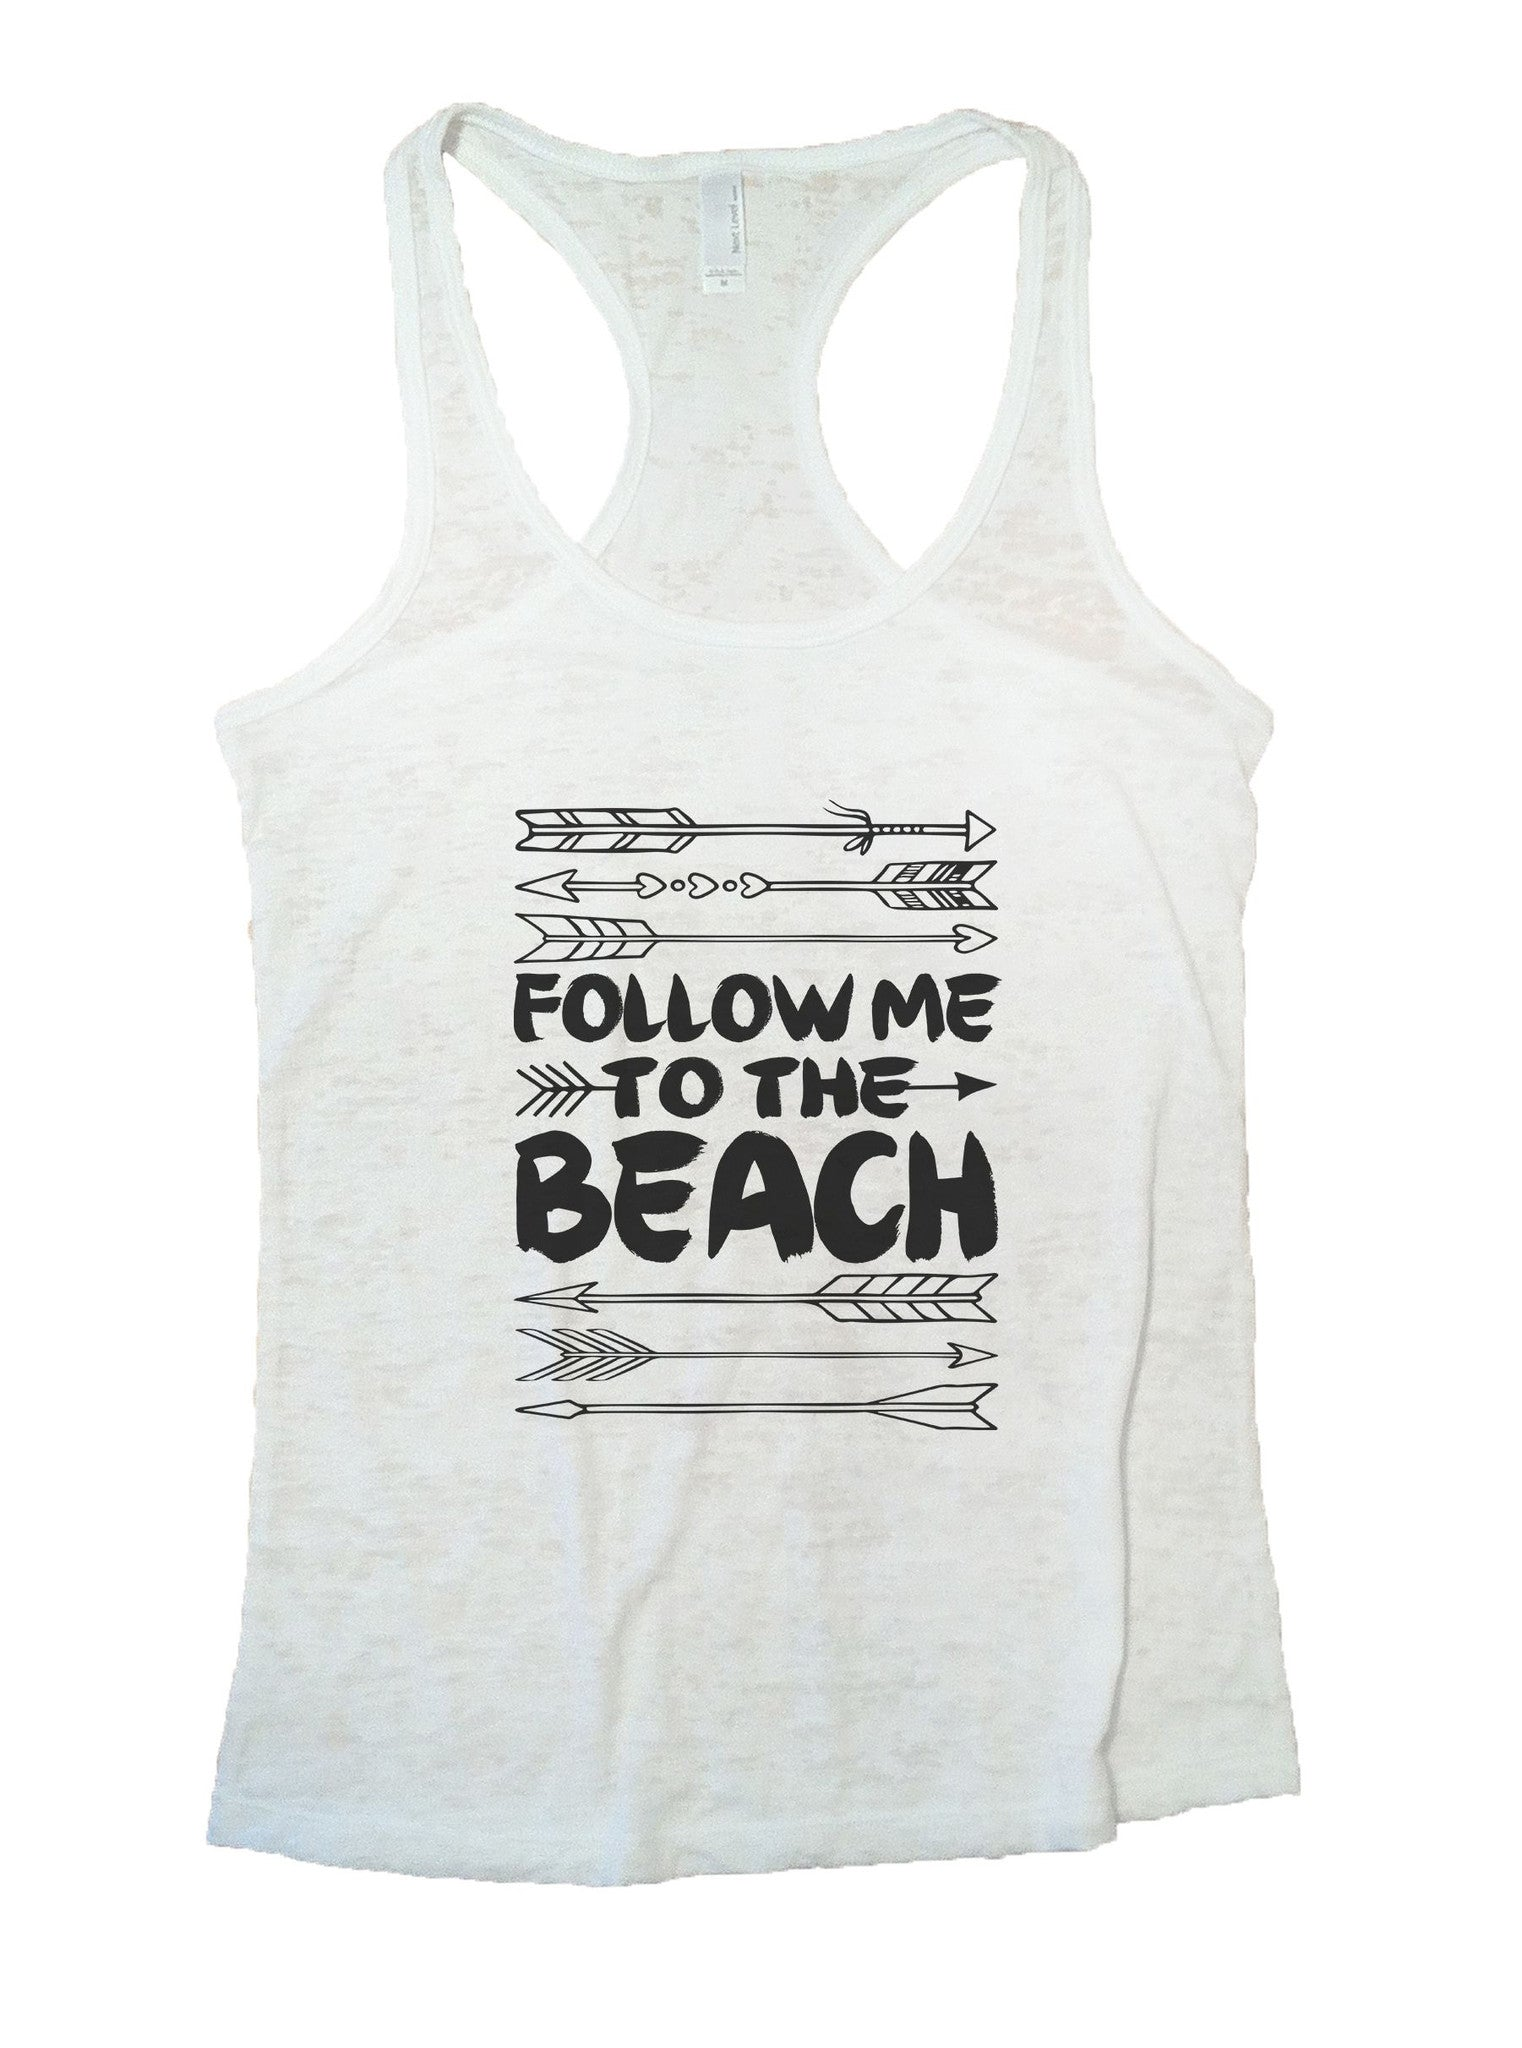 Follow Me To The Beach Burnout Tank Top By BurnoutTankTops.com - 931 - Funny Shirts Tank Tops Burnouts and Triblends  - 1